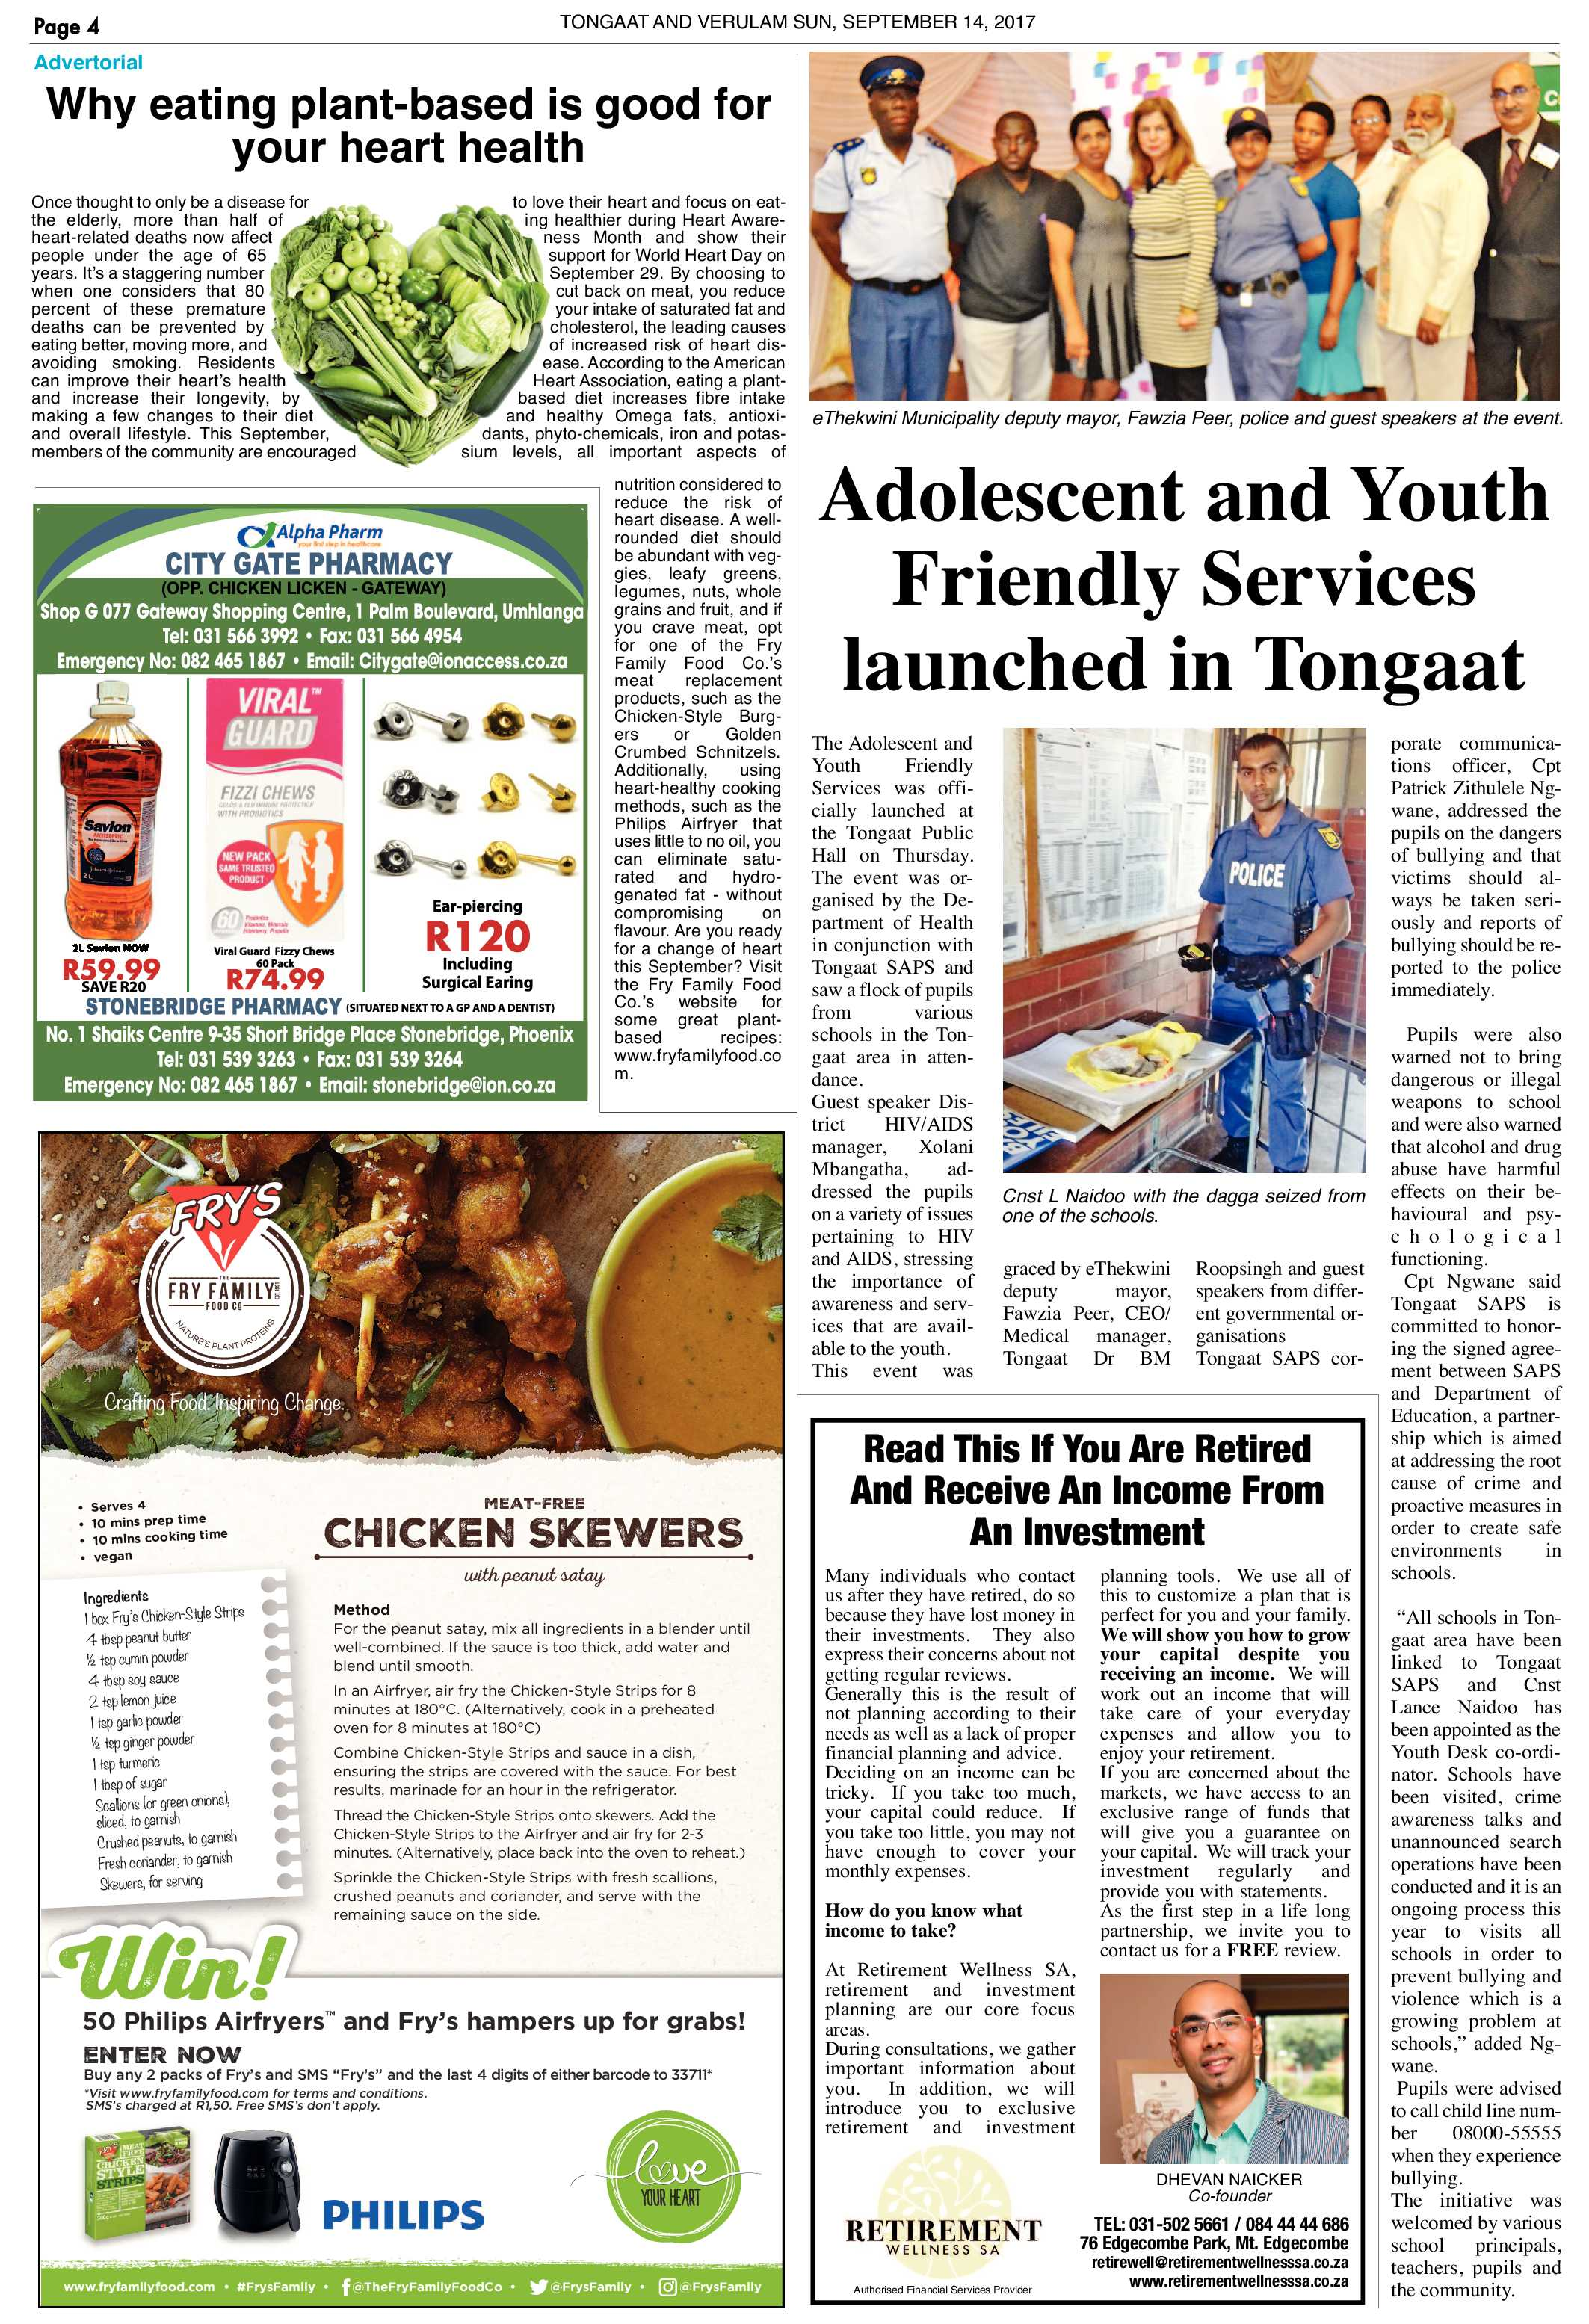 tongaat-verulam-sun-september-14-epapers-page-4